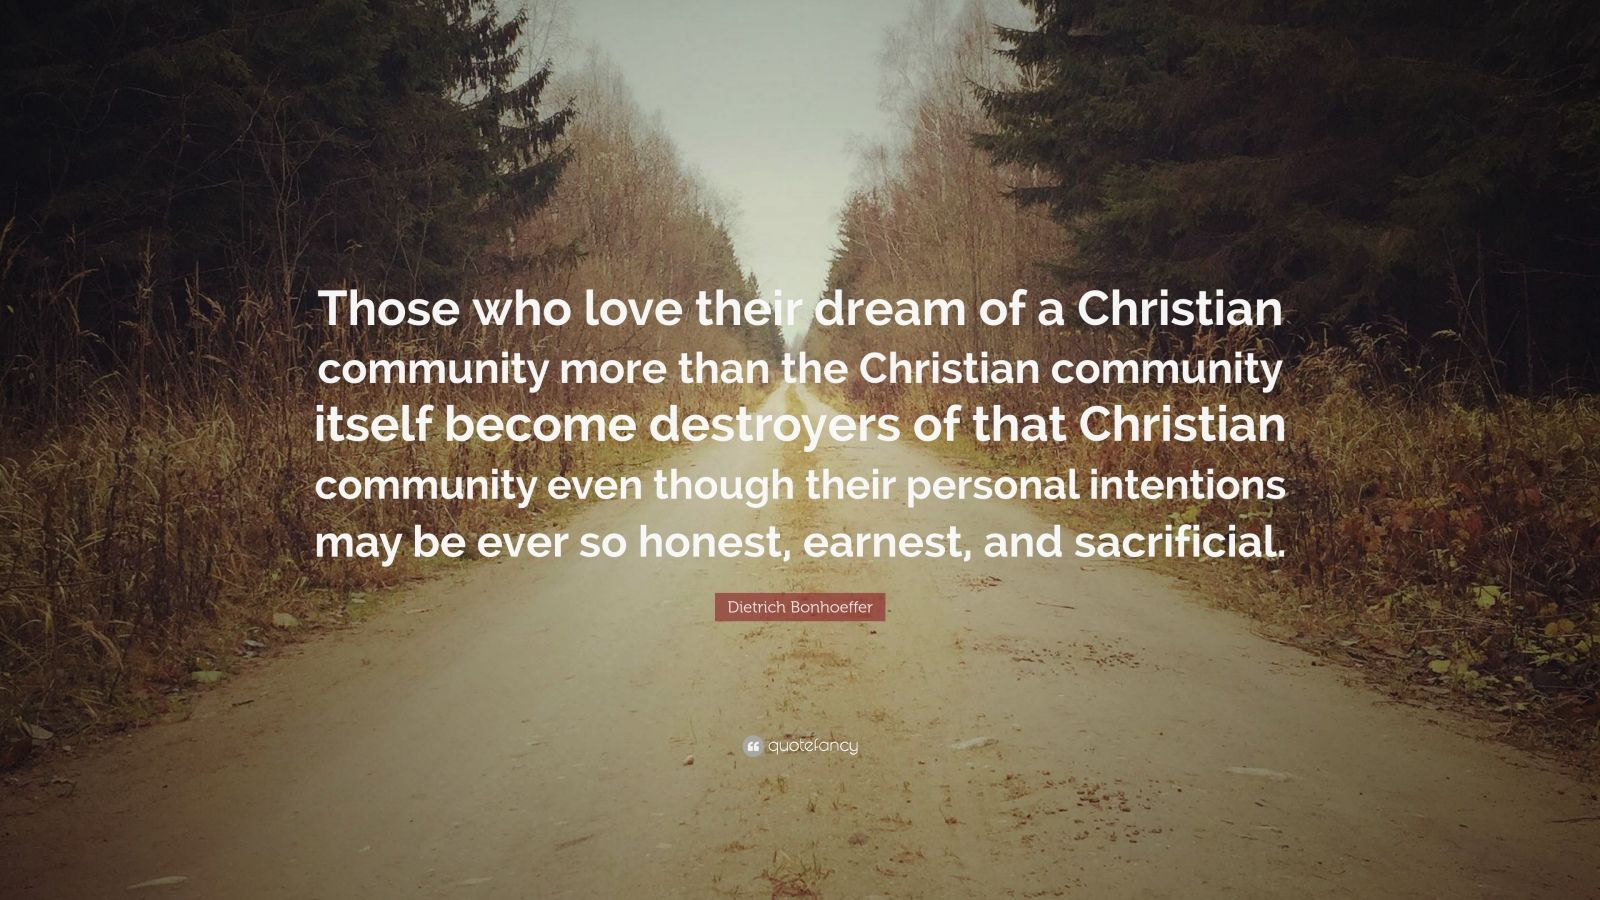 """Dietrich Bonhoeffer Quote: """"Those who love their dream of a Christian community more than the Christian community itself become destroyers of that Christian community even though their personal intentions may be ever so honest, earnest, and sacrificial."""""""